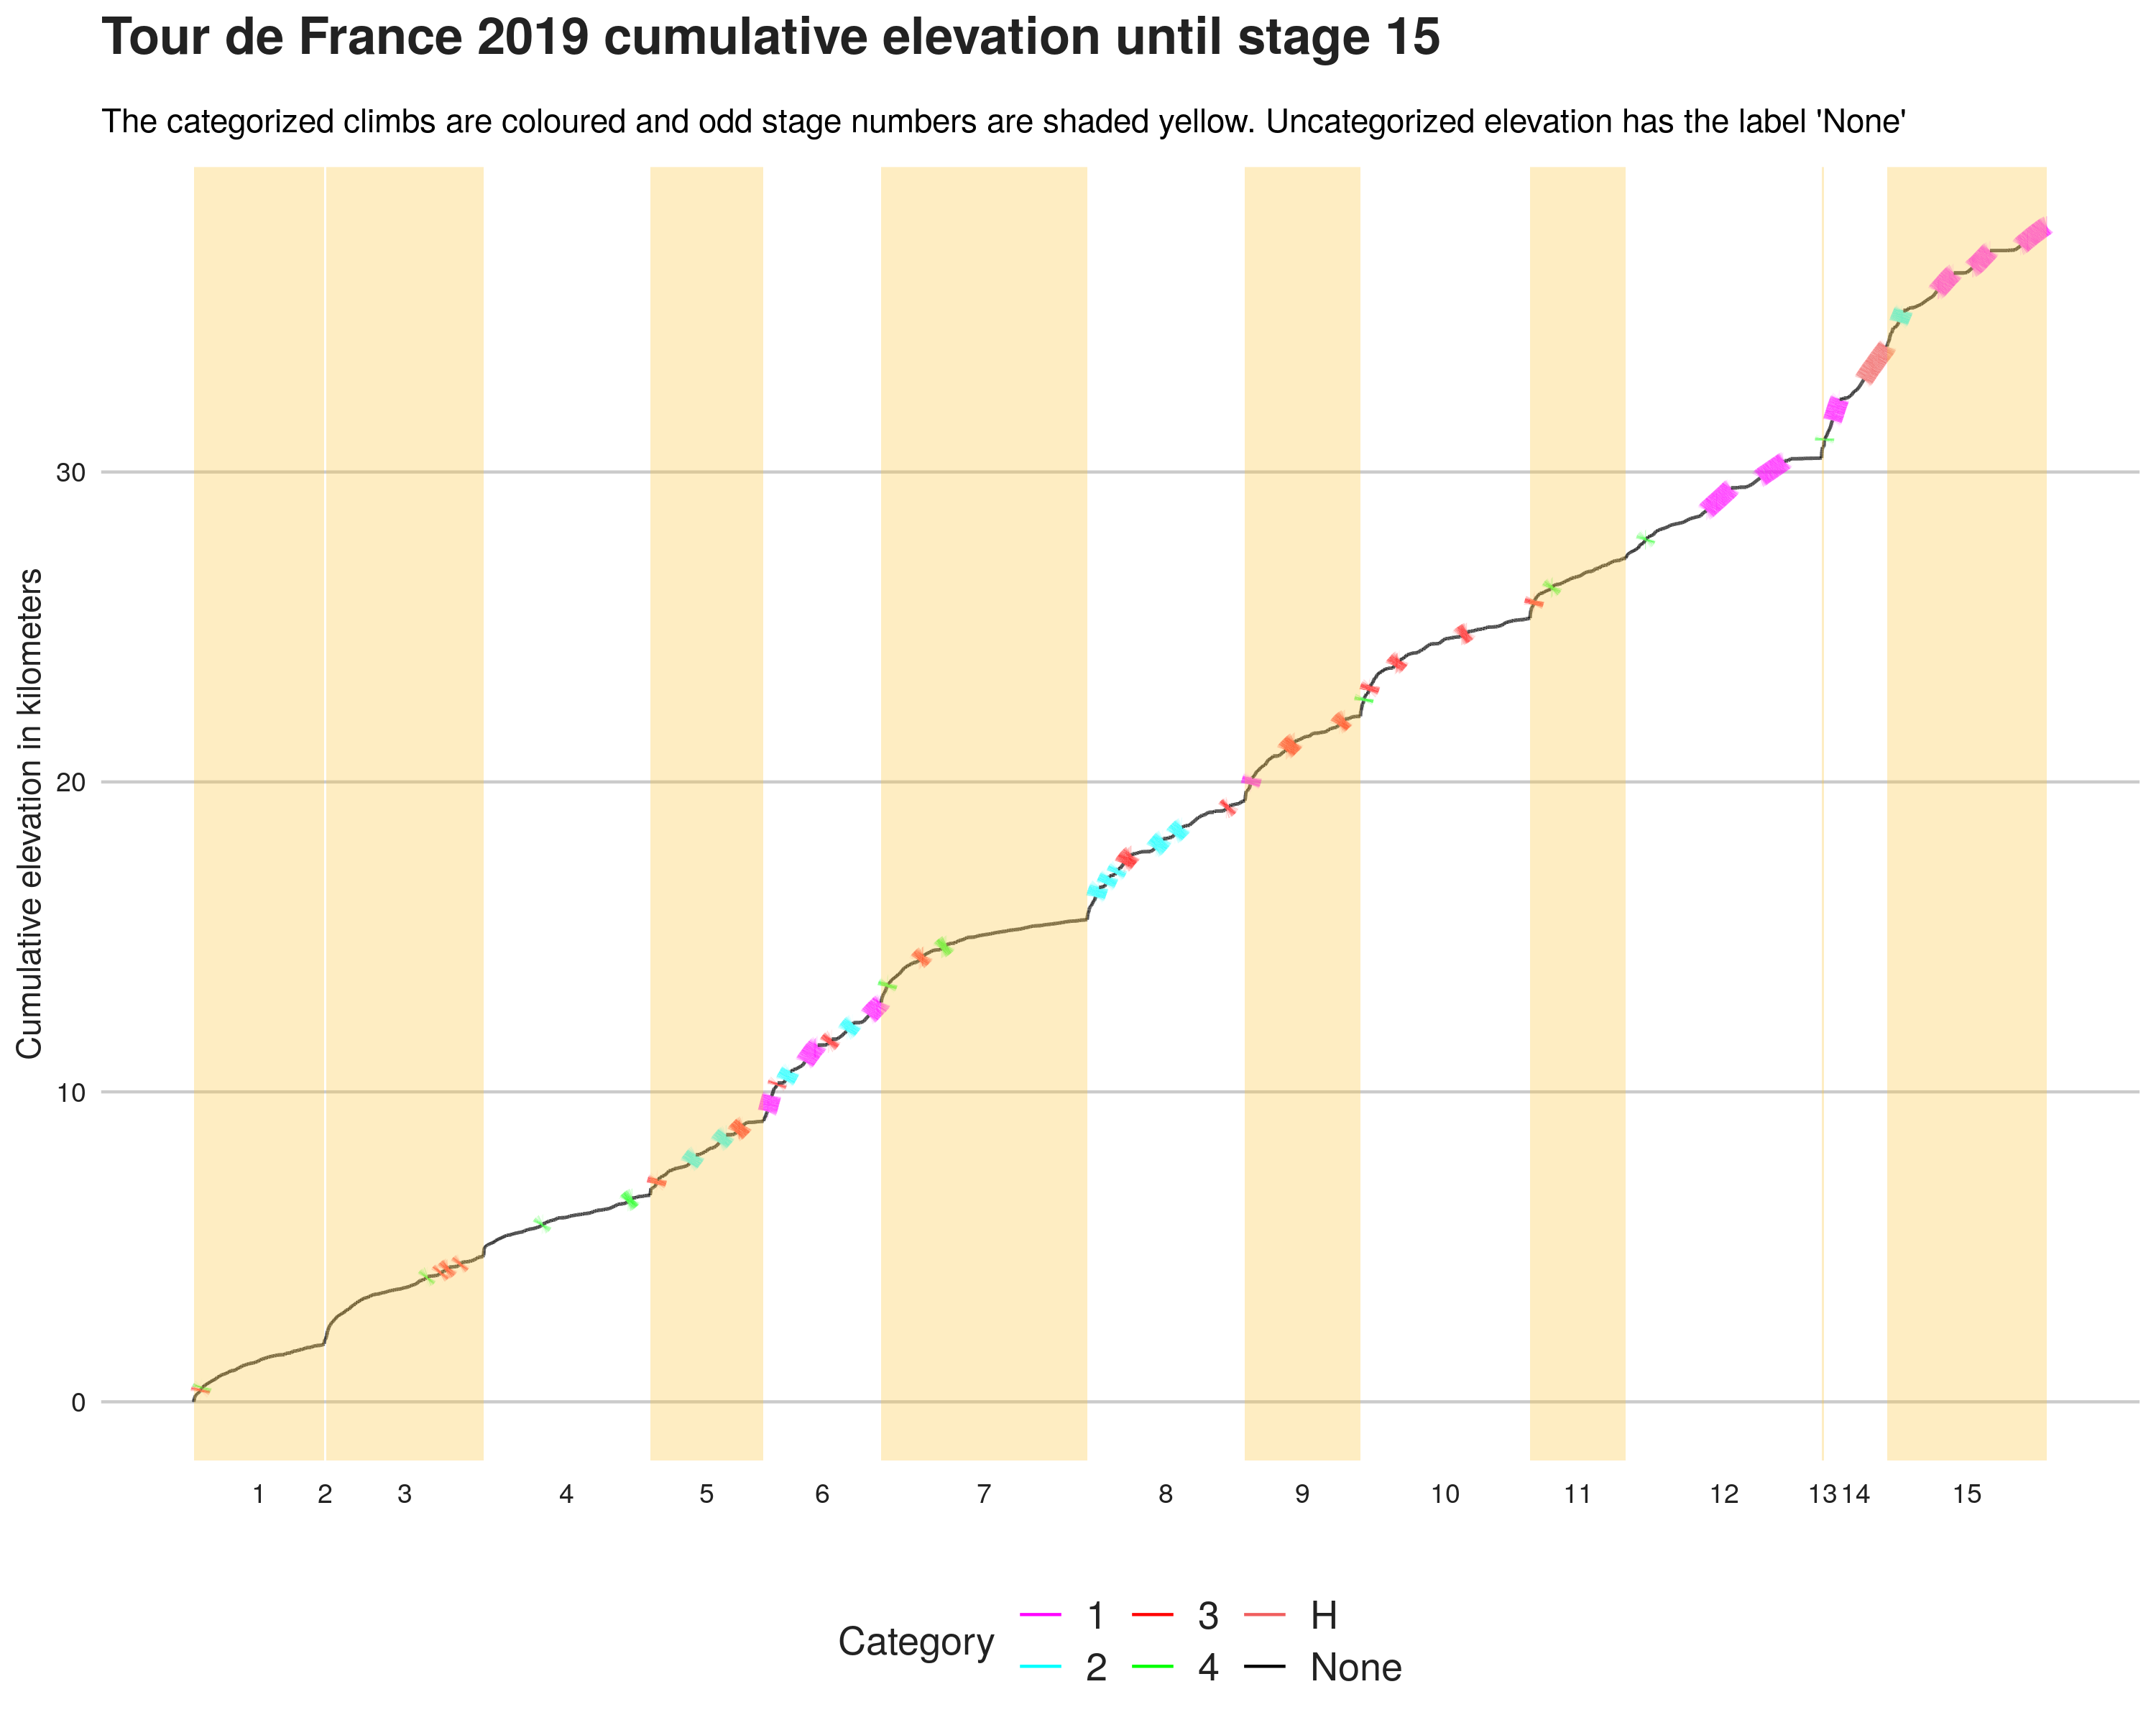 Tour de France 2019 cumulative stage elevation with categorized climbs highlighted.